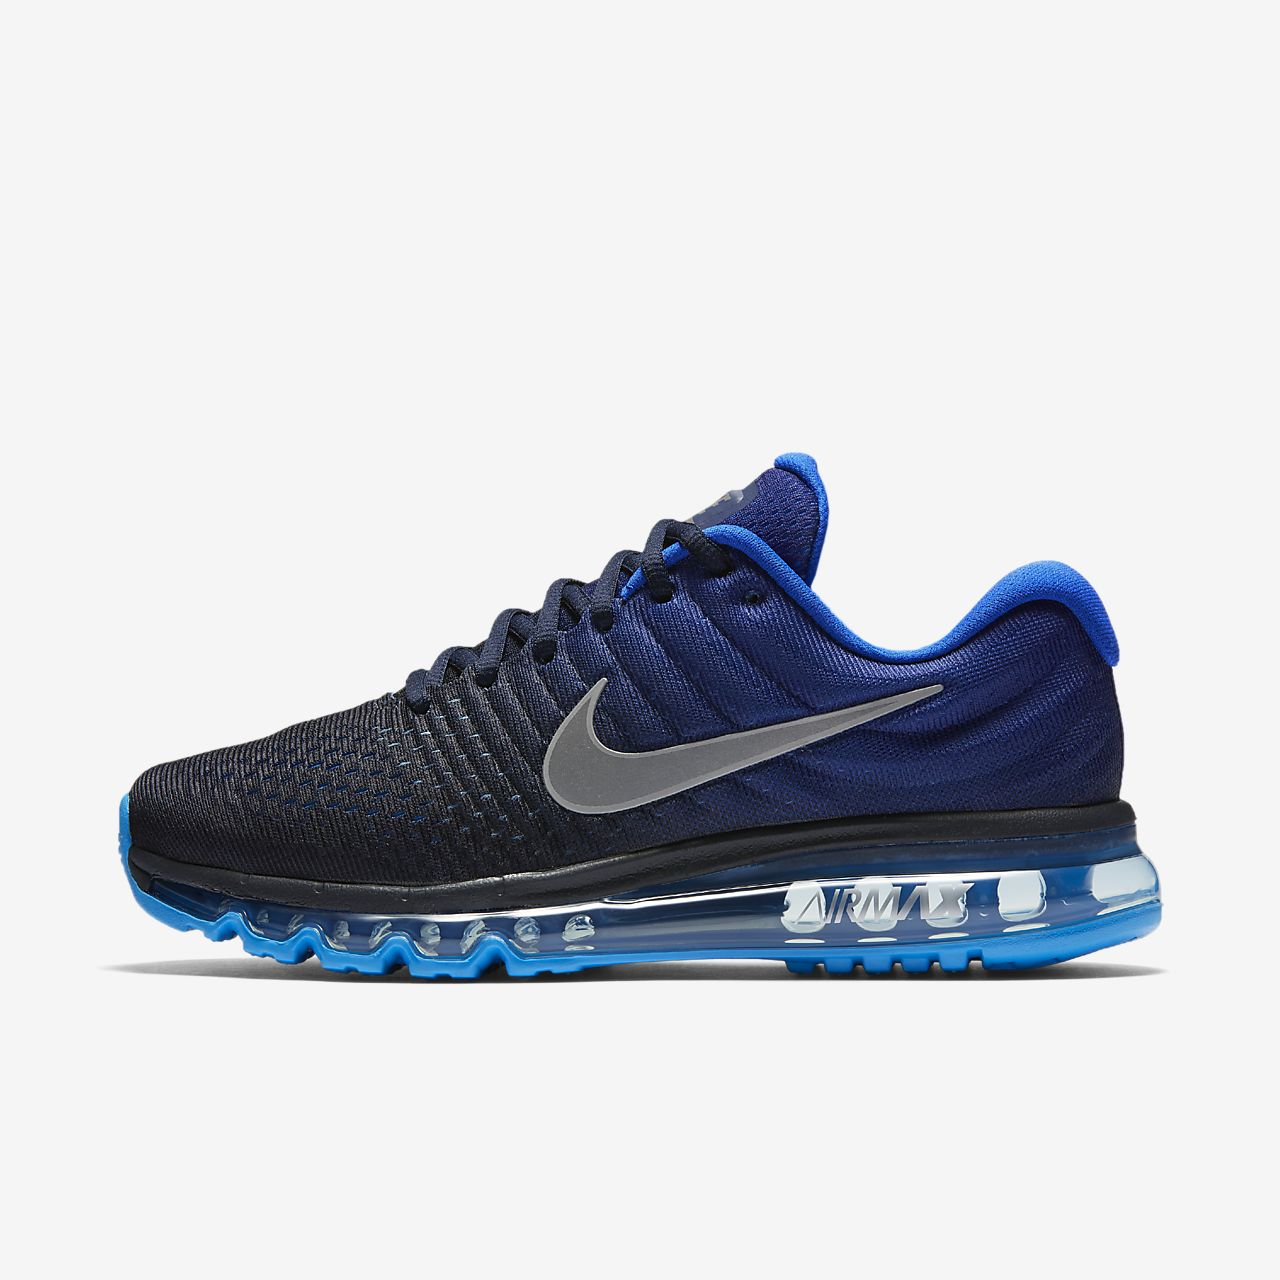 Nike Air Max 2017 'obsidianobsidian blue' | UNBOXING | fashion shoes | 2018